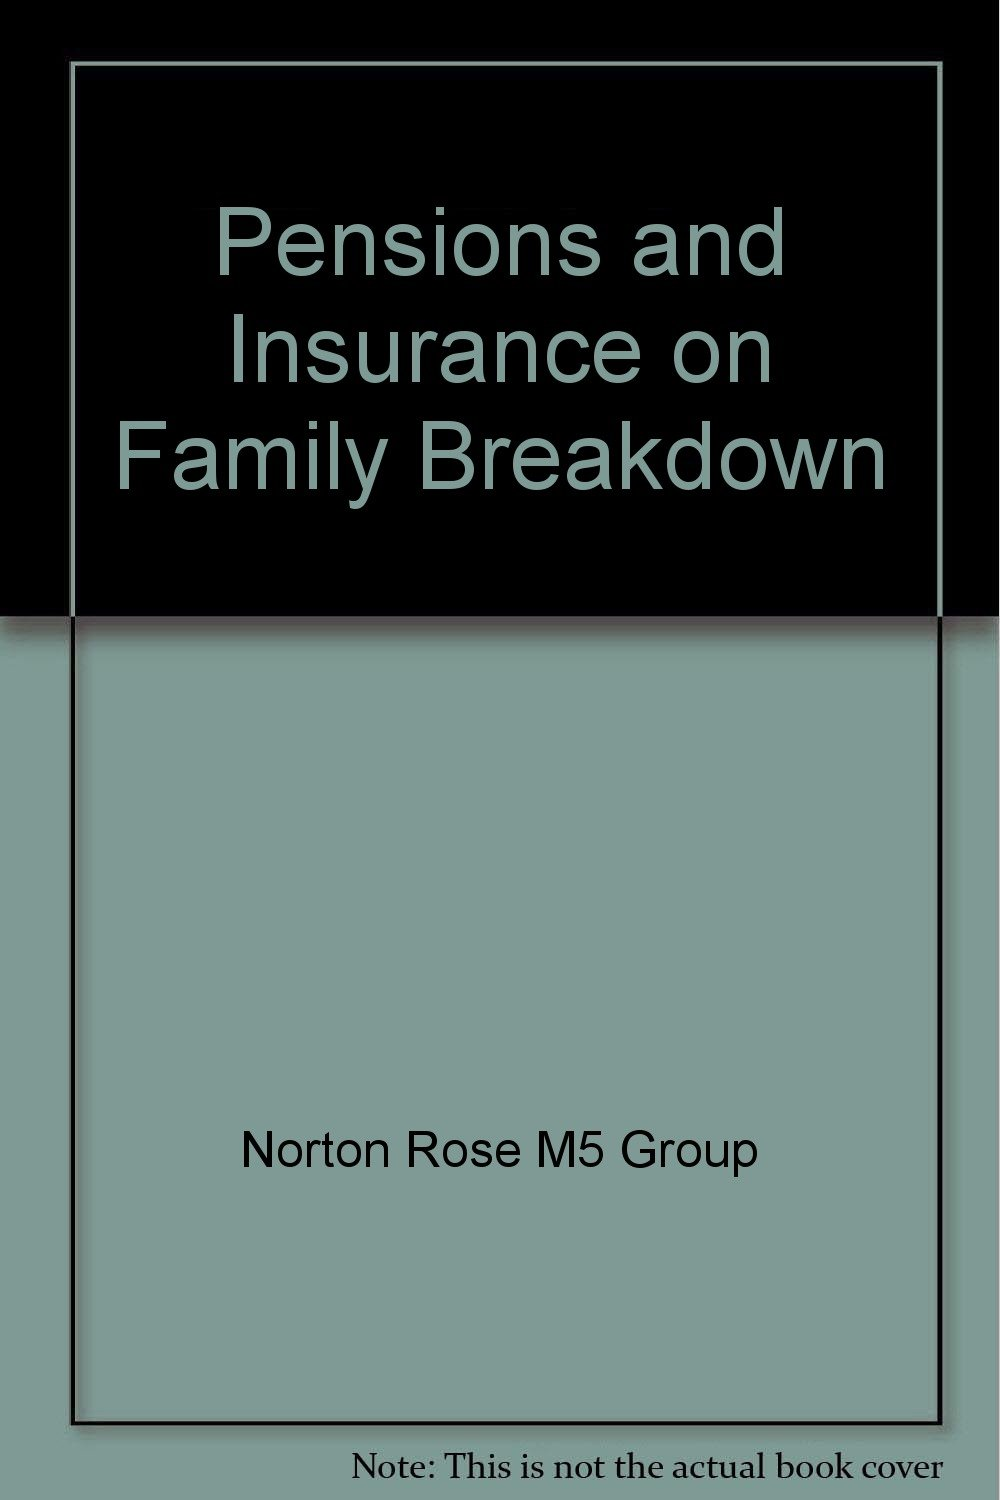 Pensions and Insurance on Family Breakdown: Norton Rose M5 Group